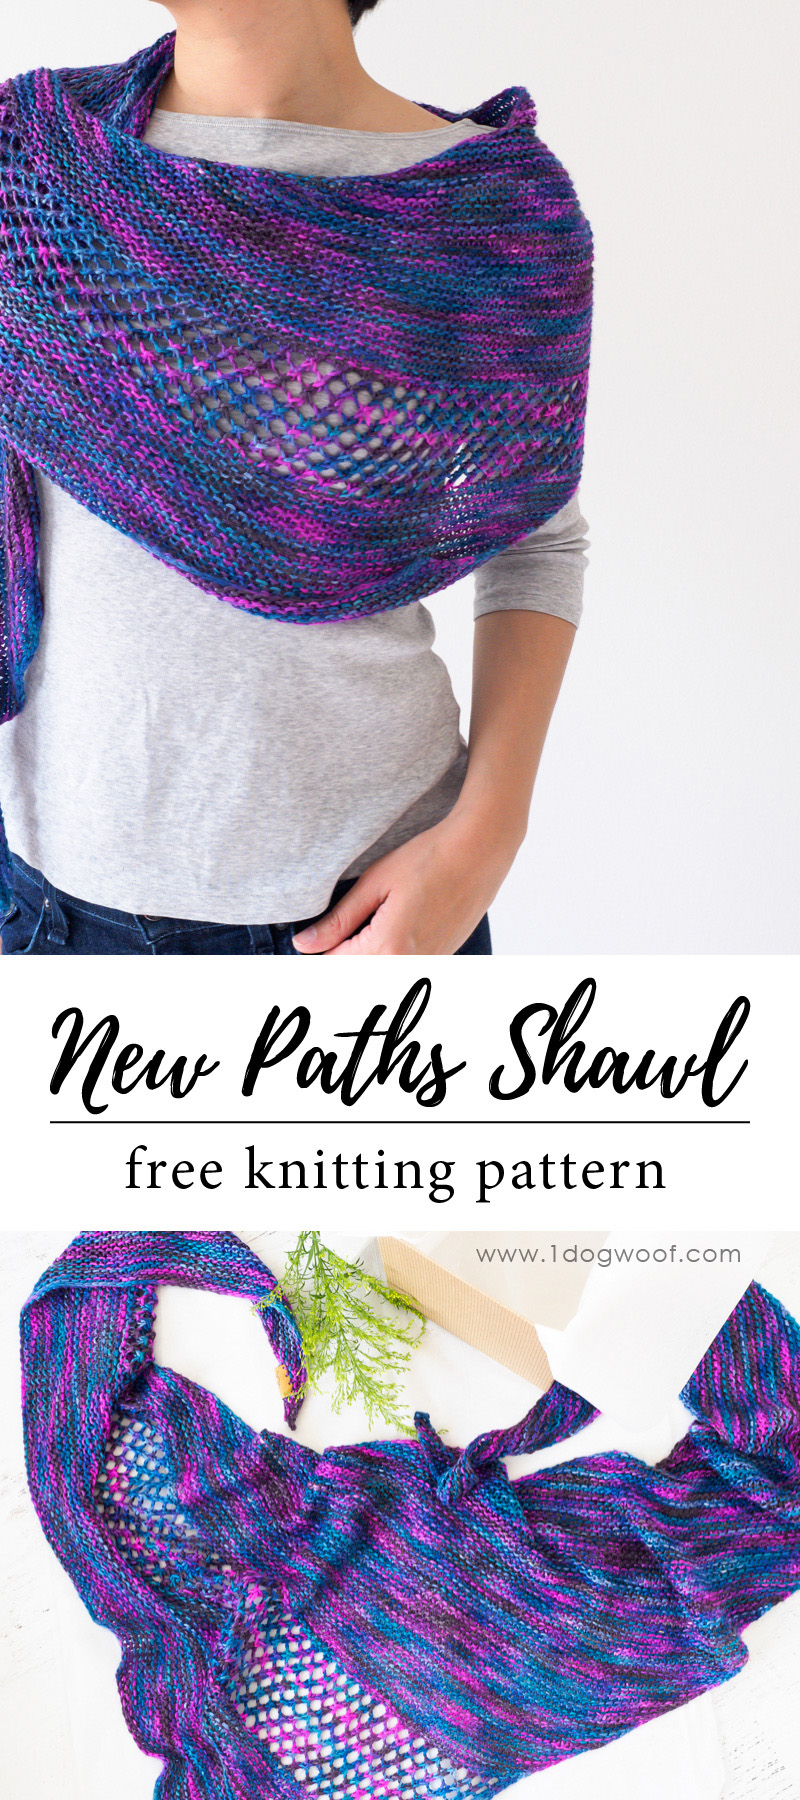 New Paths Shawl for pinning.